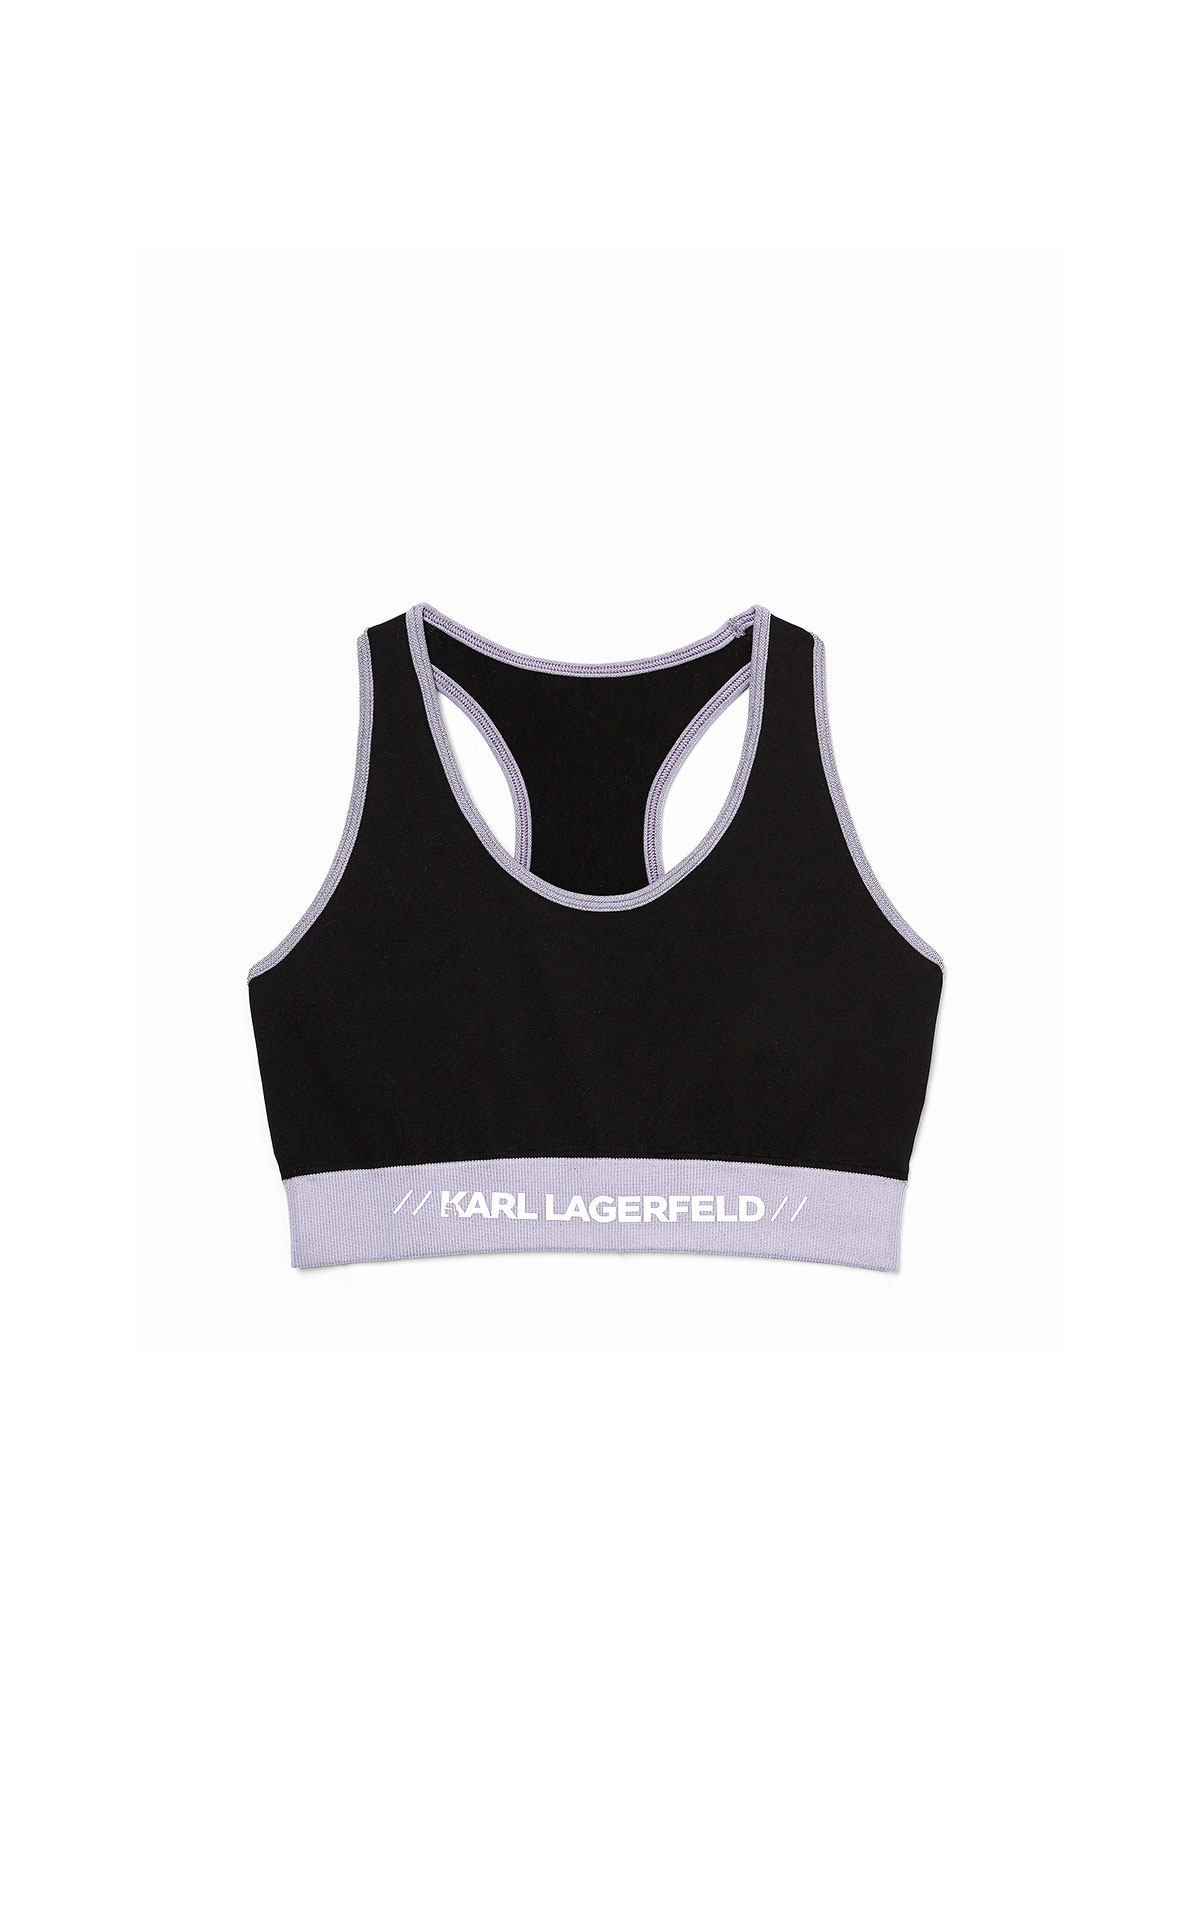 Karl Lagerfeld athleisure seamless top at The Bicester Village Shopping Collection